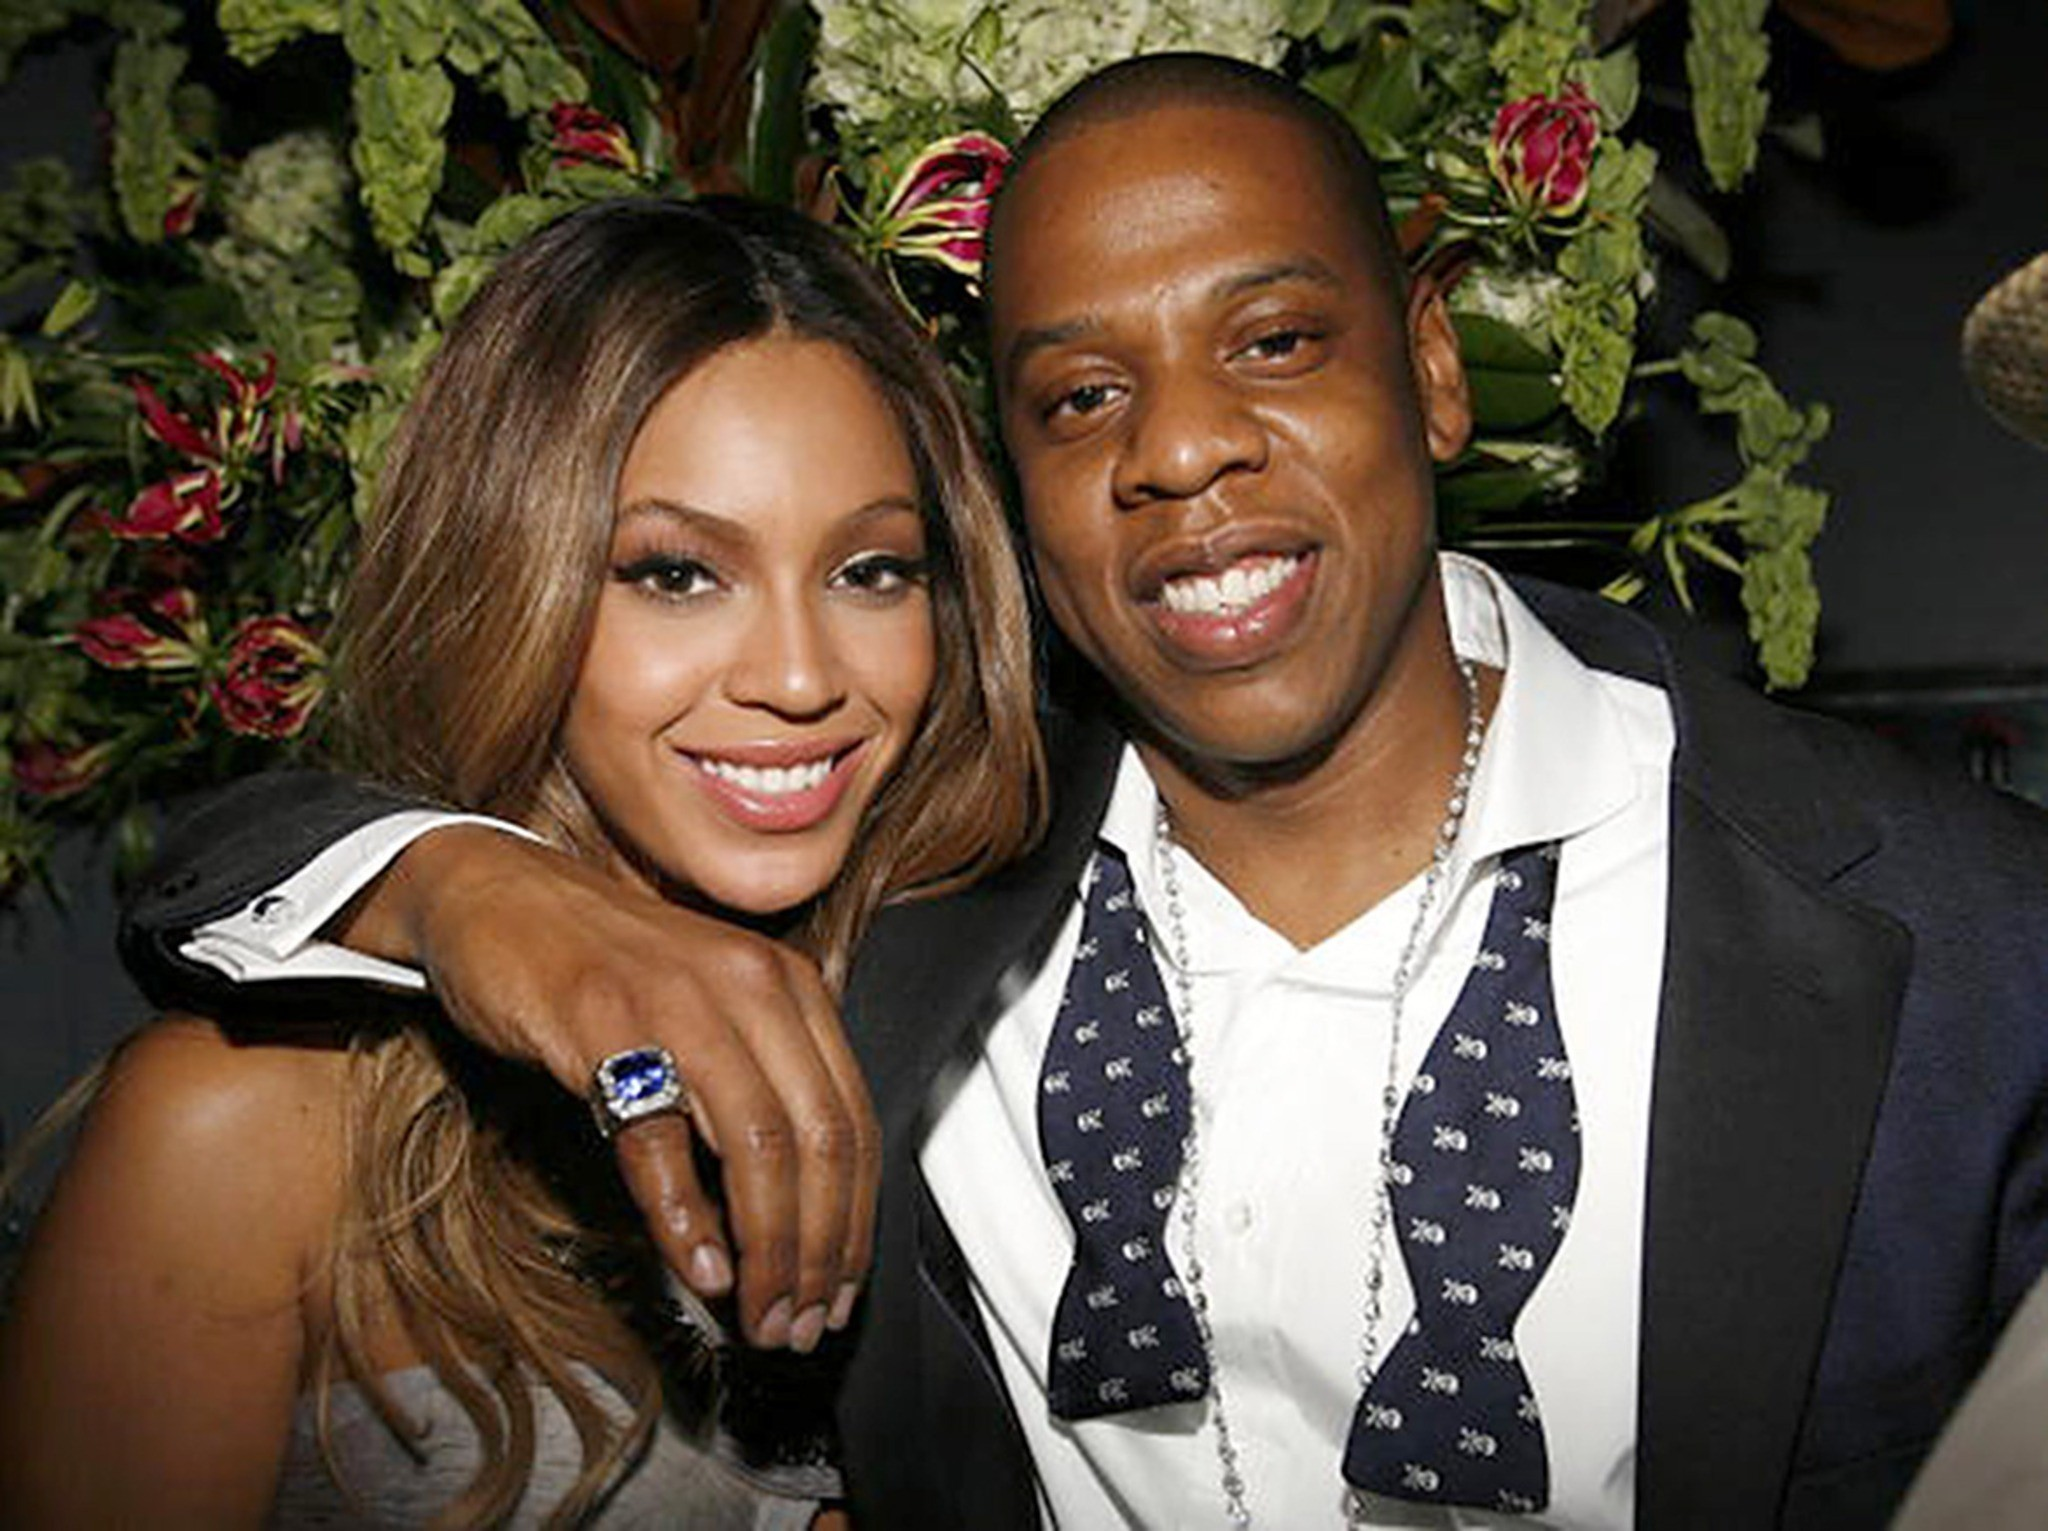 Image result for image of beyonce and jay z